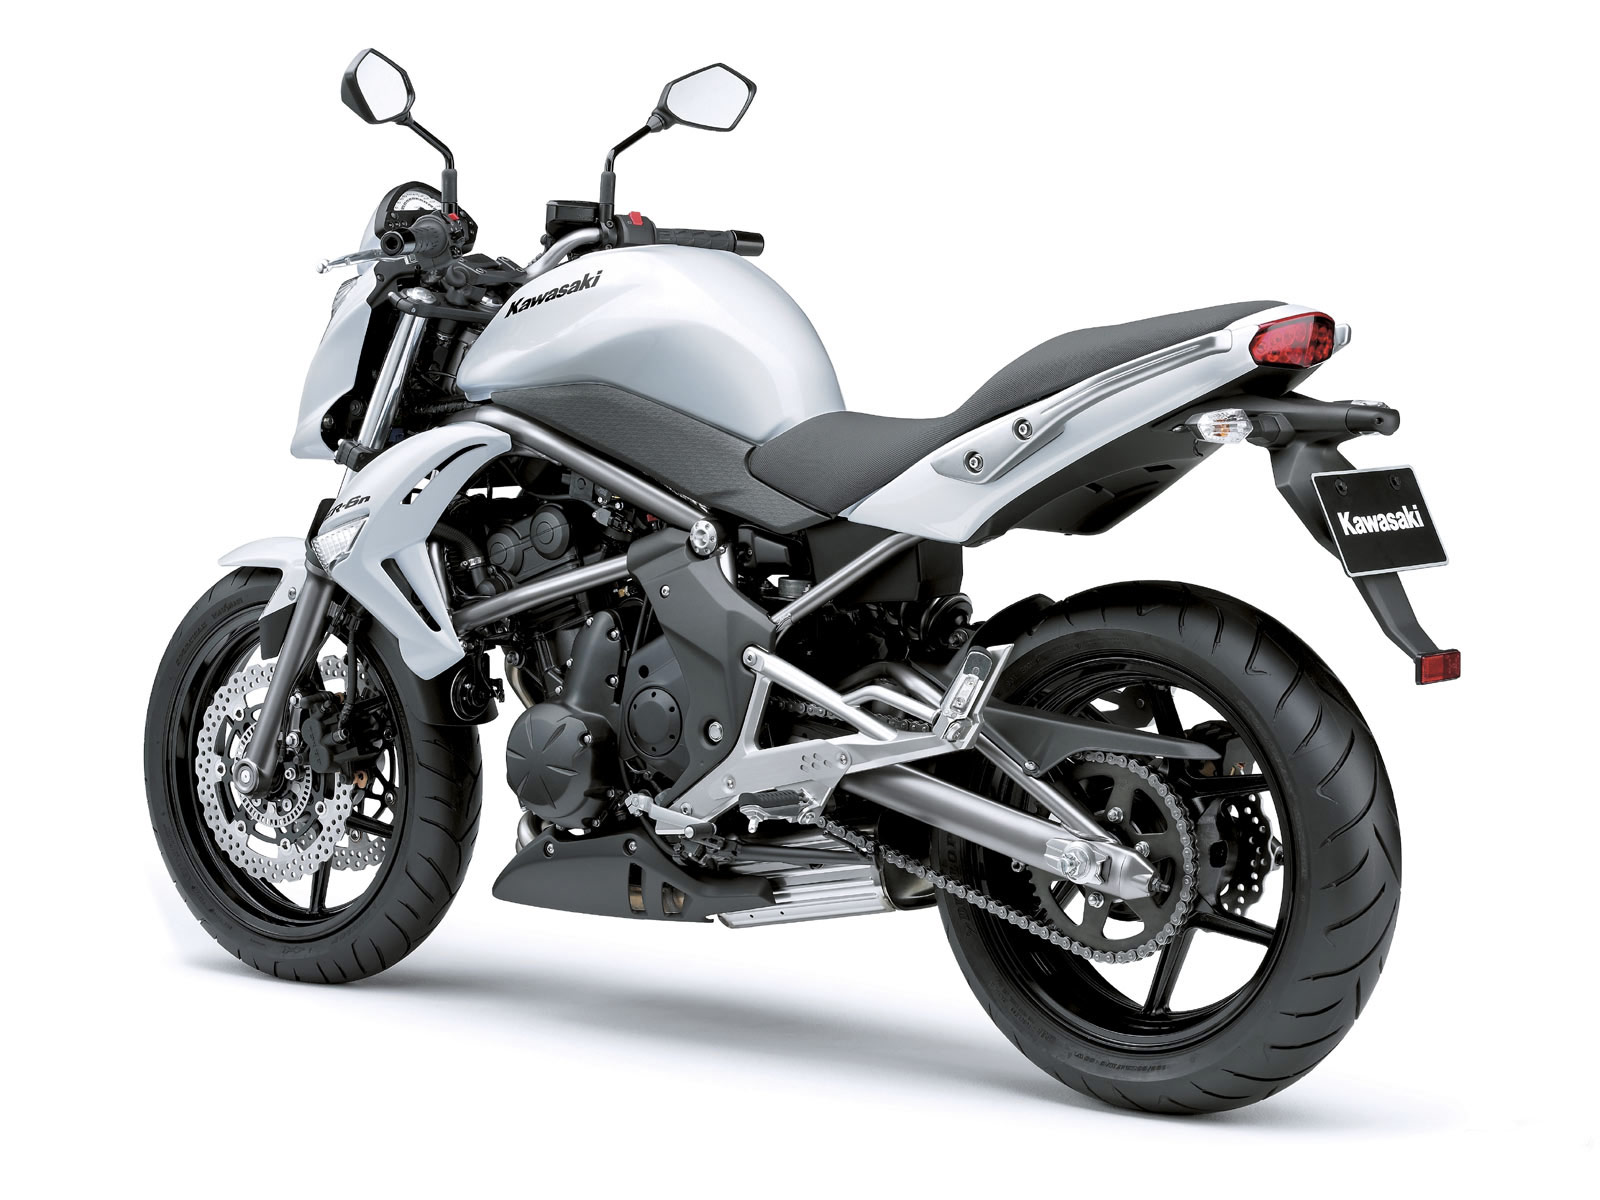 2009 KAWASAKI ER6n accident lawyers info | specs, pictures